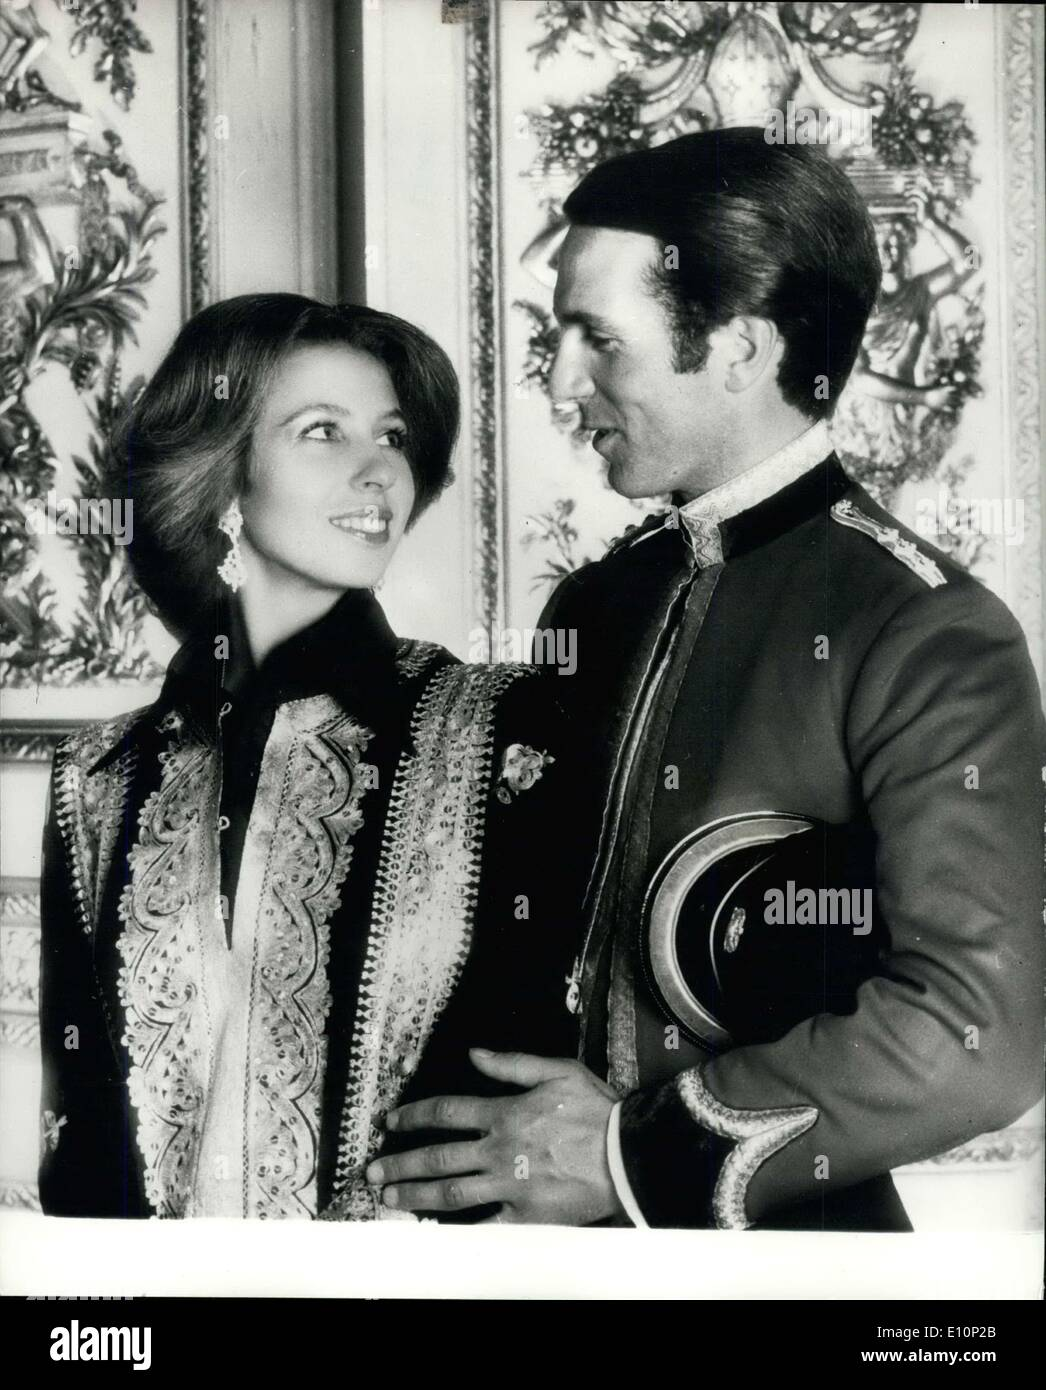 Nov. 06, 1973 - HRH Princess Anne And Captain Mark Philips; The marriage of HRH Princess Anne and Captain Philips of the Queen's Dragoon Guards will take place on November 14th - 1973 at Westminster Abbey. Princess Anne is wearing a black silk shirt and trousers with a black and gold caftan, pearl and diamond earrings set in gold. Captain Philips is in the Mess Kit of his regiment. The photograph was taken in the Crimson Drawing Room at Windsor Castle. - Stock Image